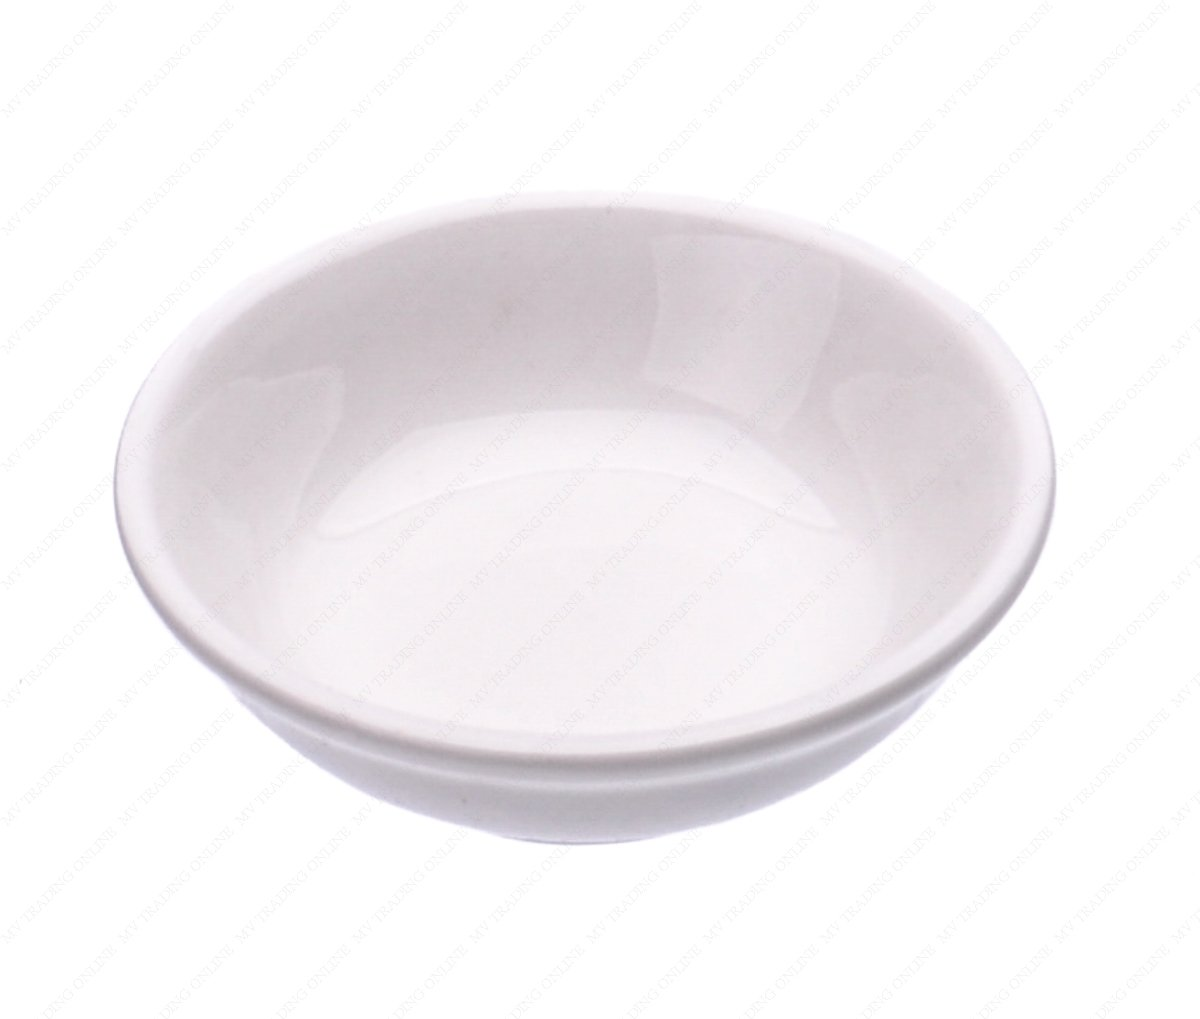 Ceramic Side Sauce Dish, 3-Inch, 2-Ounce, Set of 12